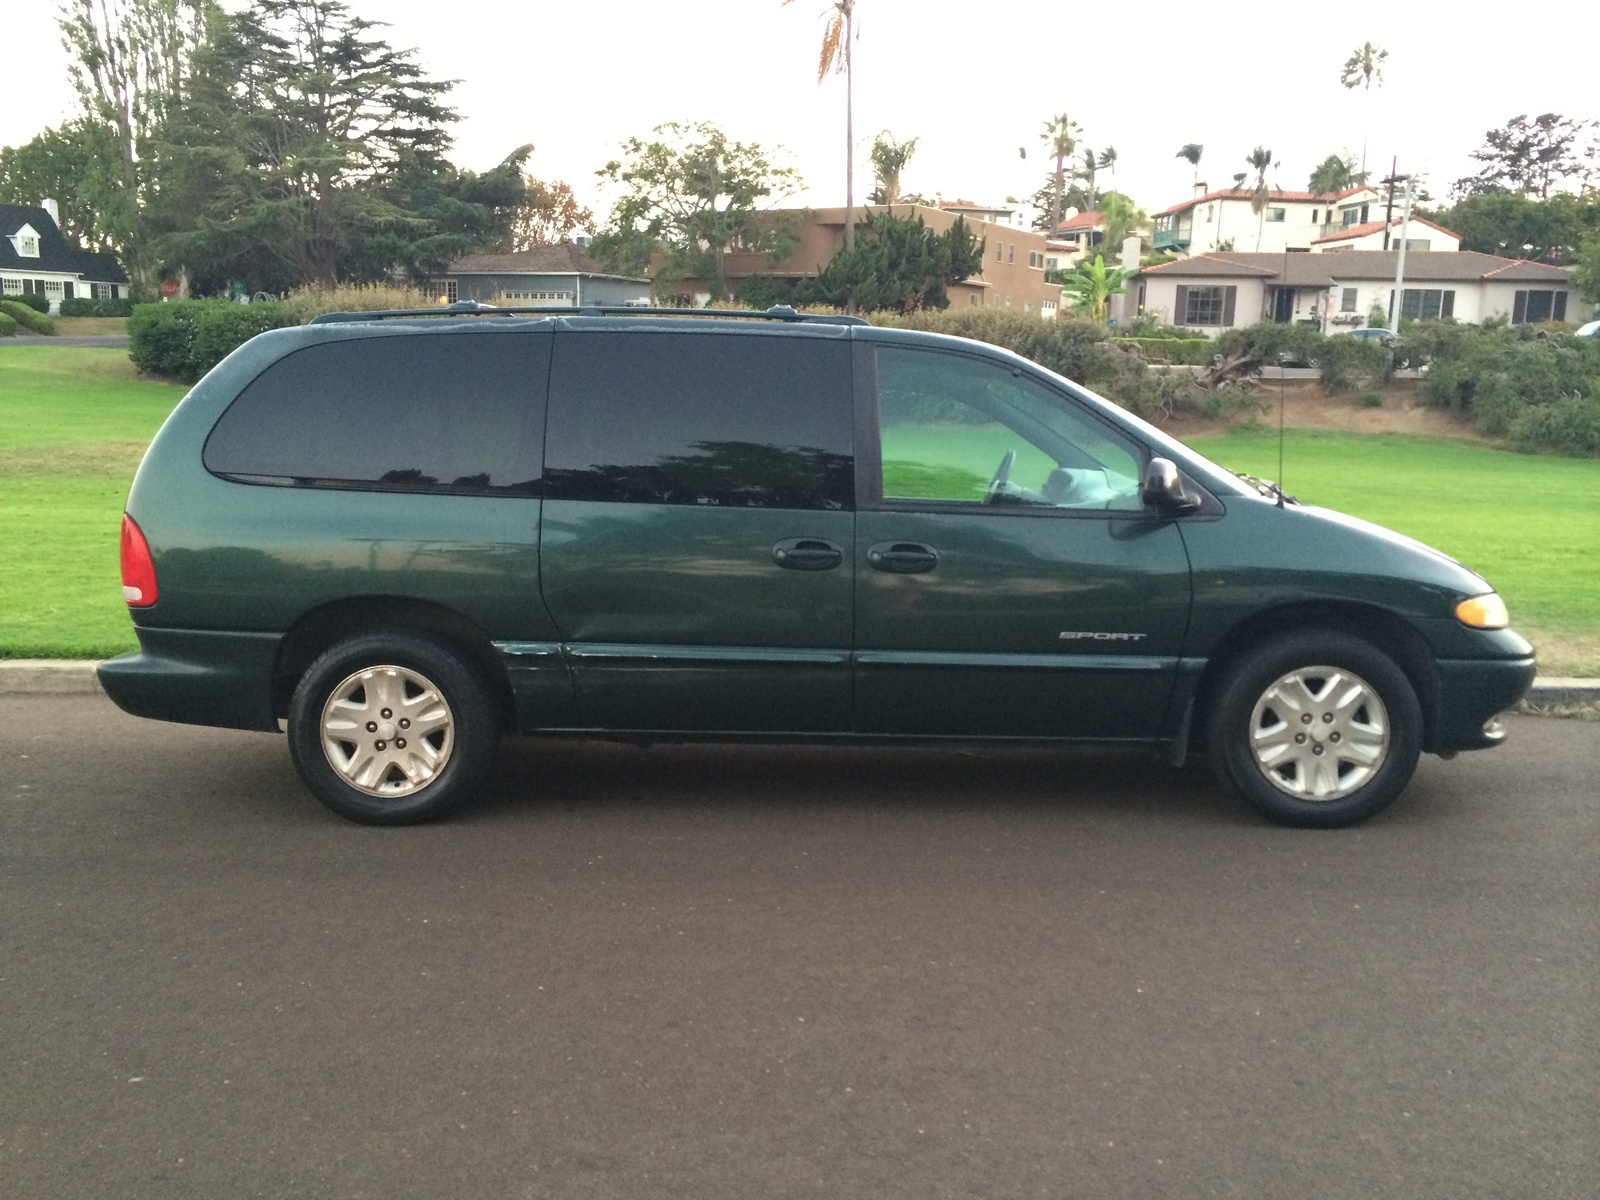 Picture of 1998 Dodge Grand Caravan 4 Dr STD Passenger Van Extended